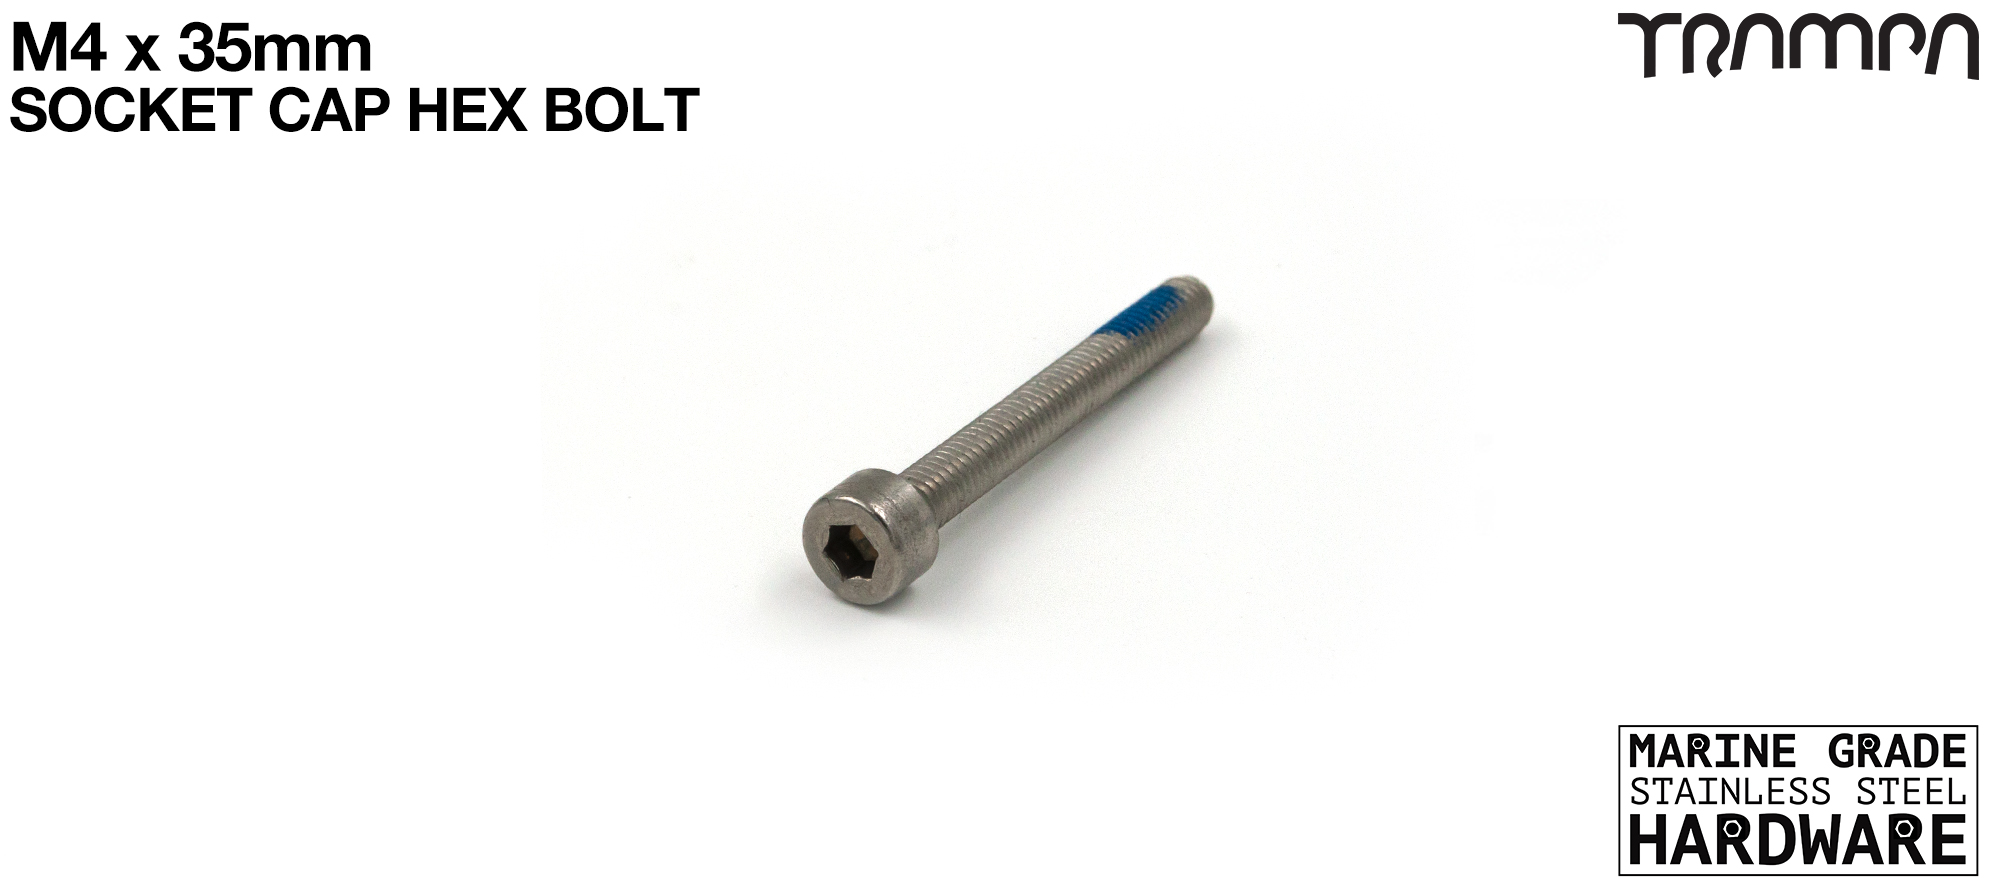 M4 x 35mm Socket Capped Bolt - Marine Grade Stainless steel with locking paste